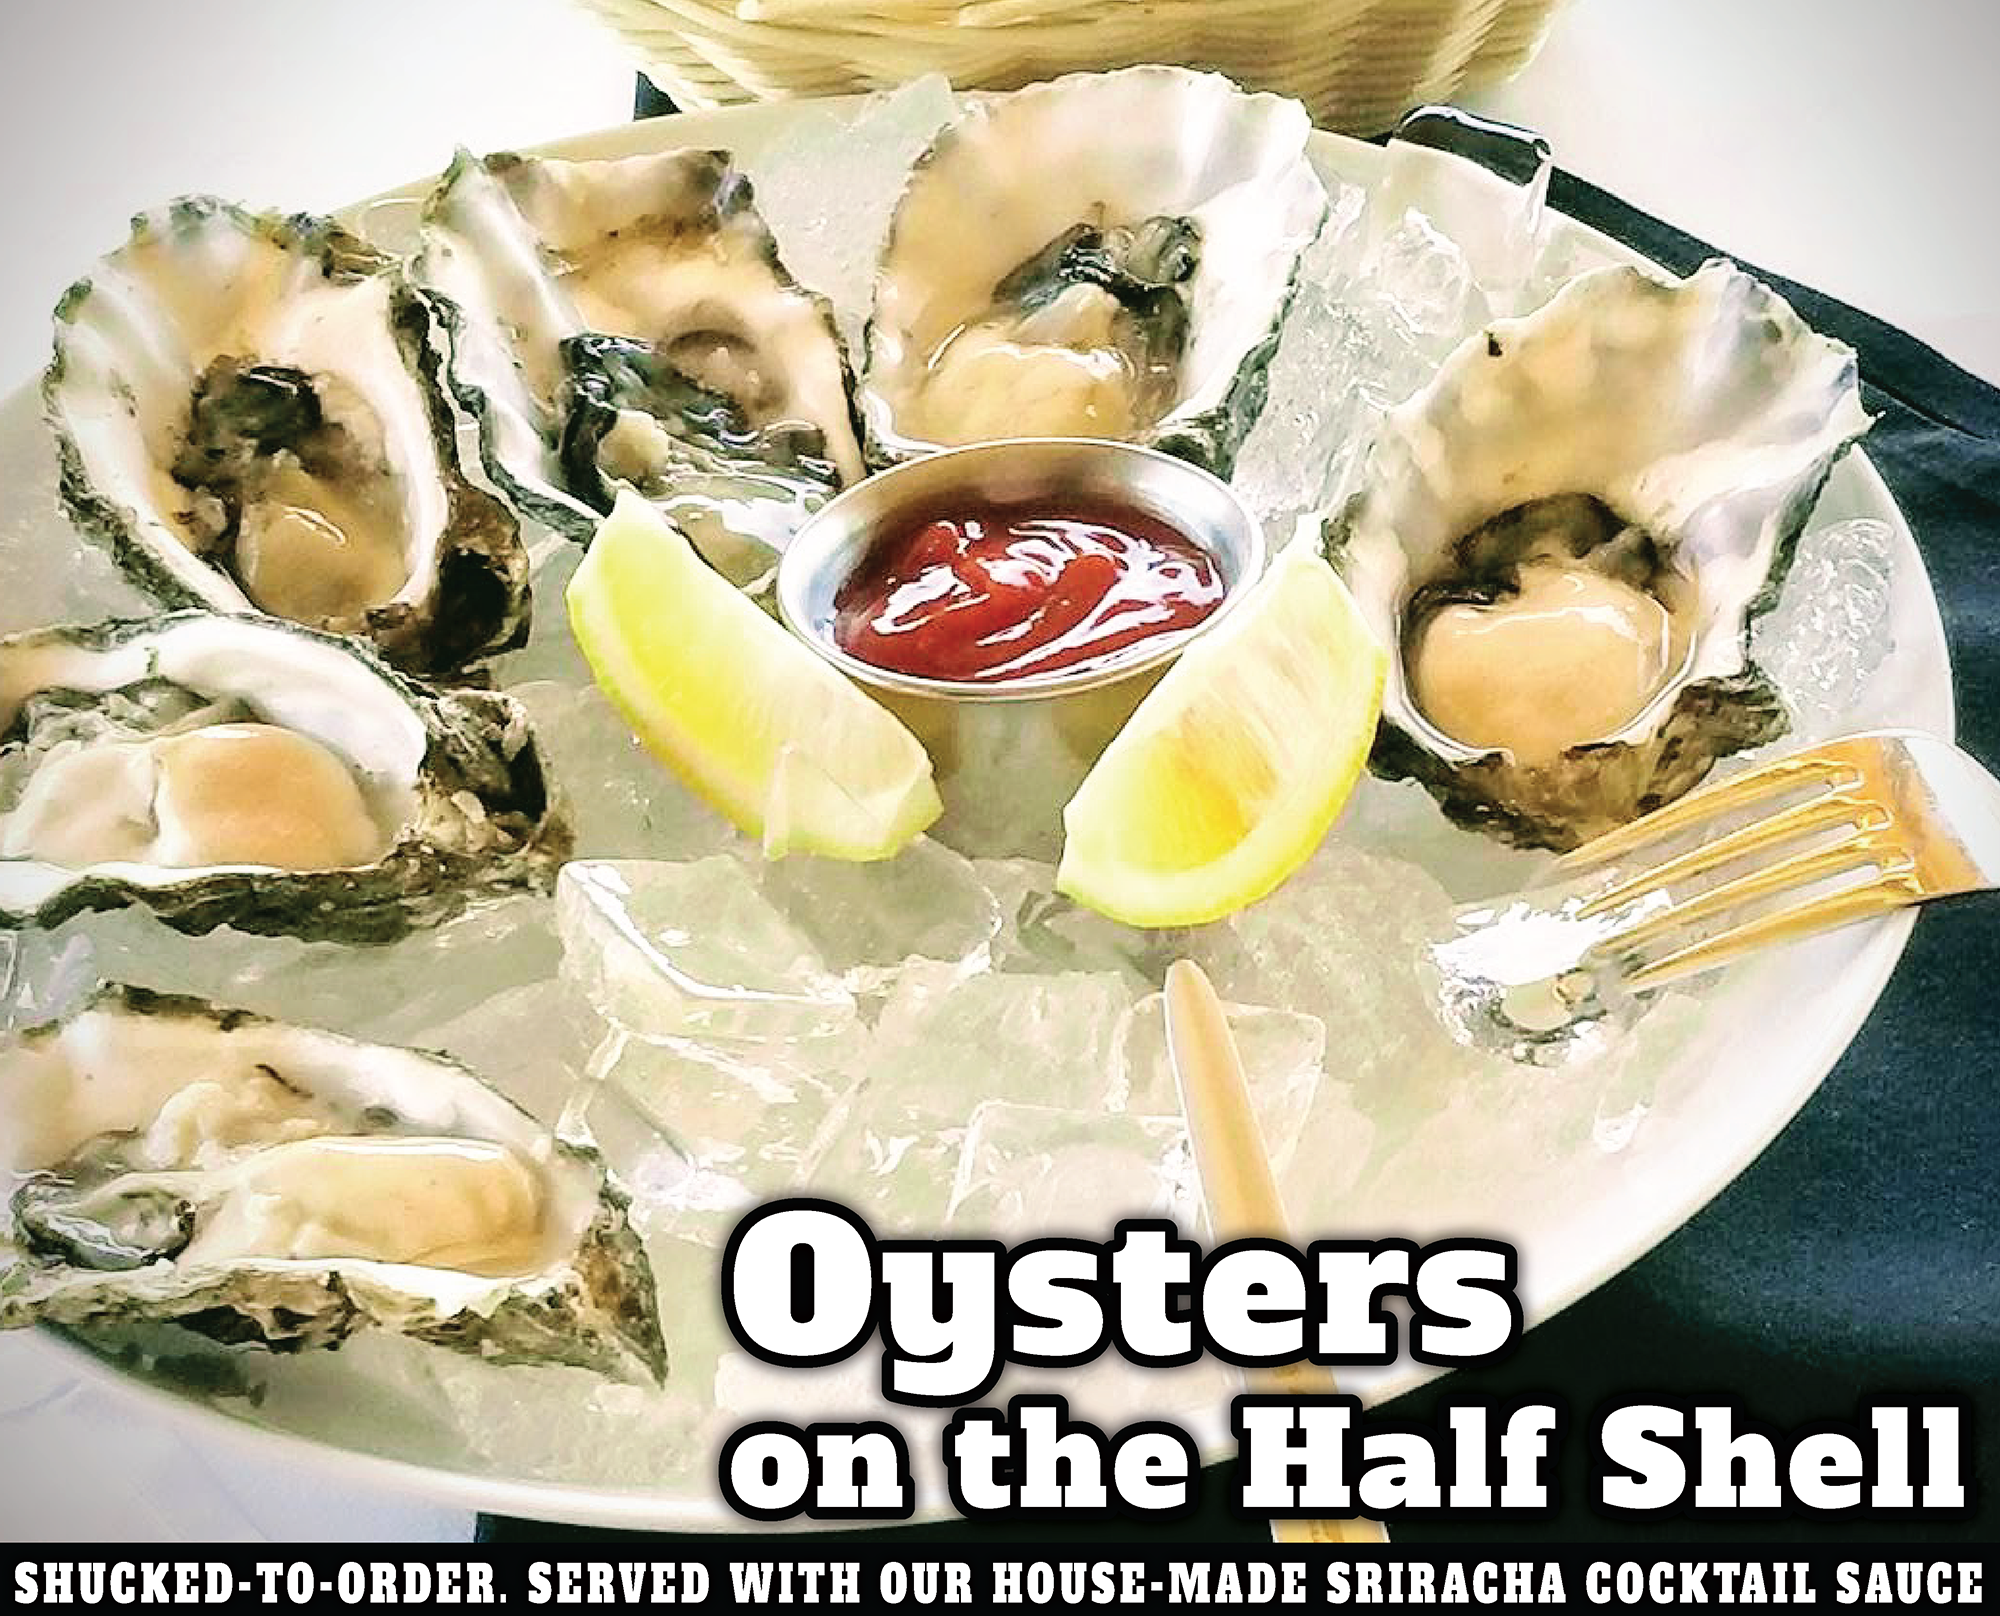 This Week's Special-Oysters on a Half Shell (FB).png